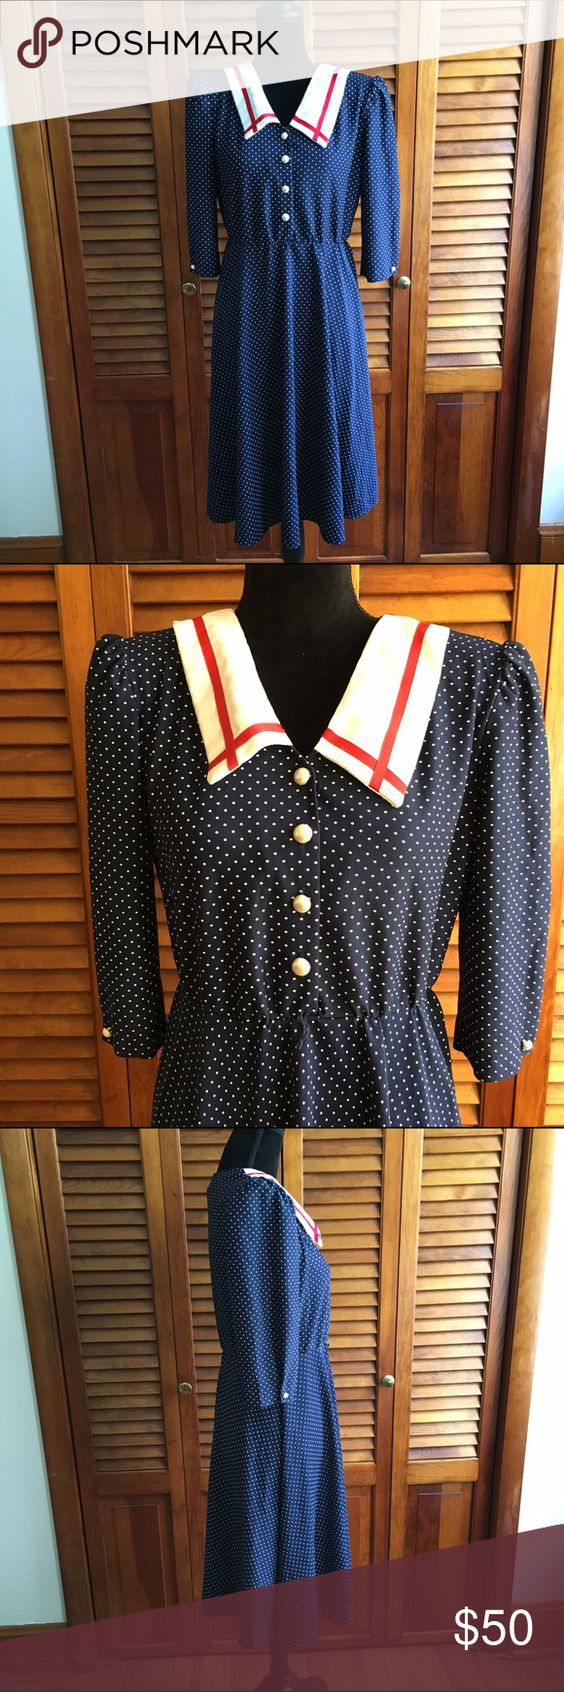 Vintage 80s Sailor Dress Vintage 80s navy blue, white and red polka dot dress with chunky collar, buttons, and removable shoulder pads. Has loops for a belt but does not come with one. Stretchy around the waist and very comfortable to wear. Lined and not see through at all. Super unique and true vintage. Hits about to the knee or a little below depending on how tall you are. Not a mini dress. Fits a size M best. Kawaii, lolita, sailor, navy, nautical, vintage, 80s, collectable, gunne sax…